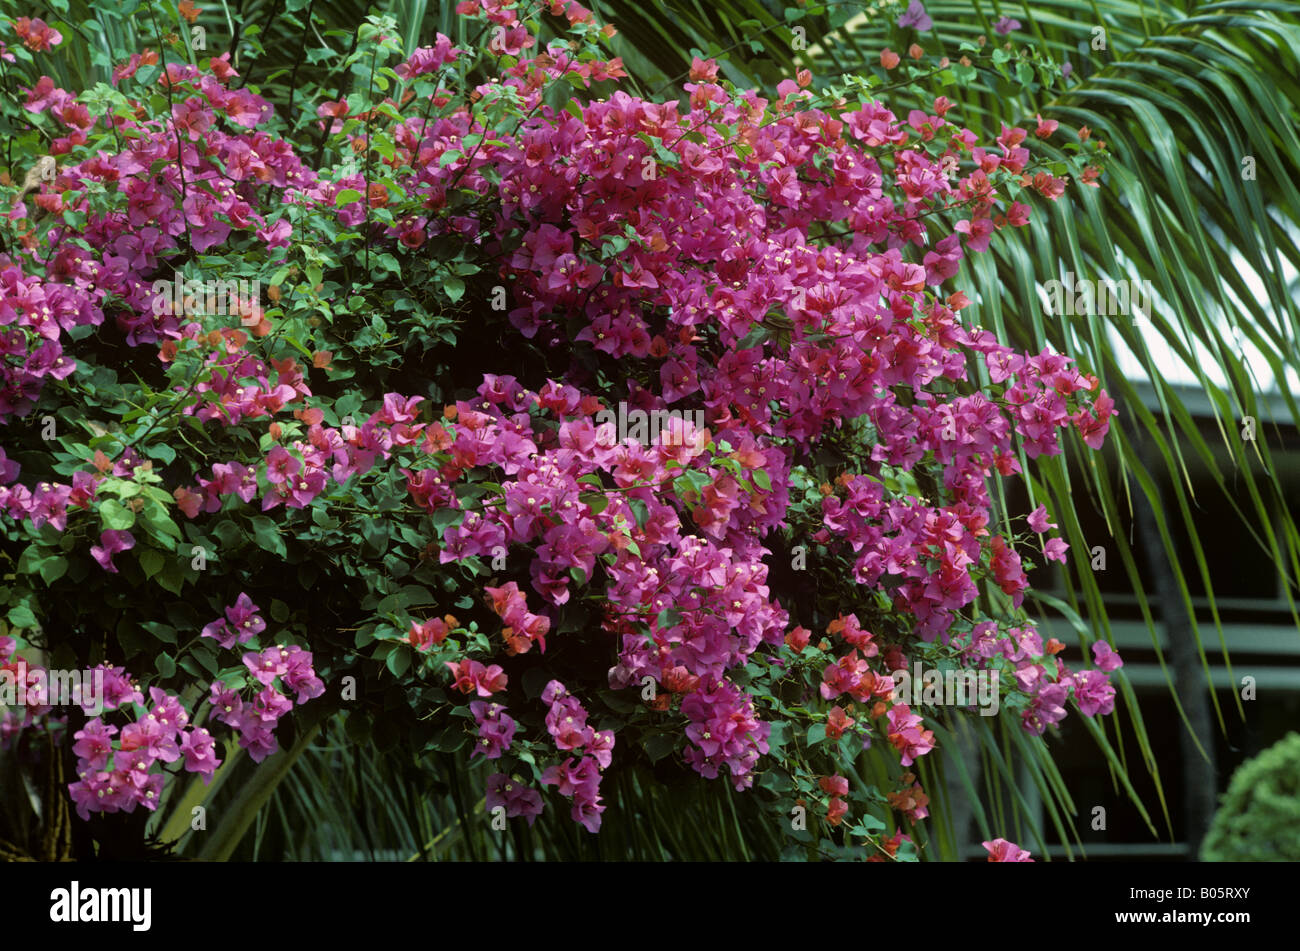 philippines pink plant stockfotos philippines pink plant bilder alamy. Black Bedroom Furniture Sets. Home Design Ideas